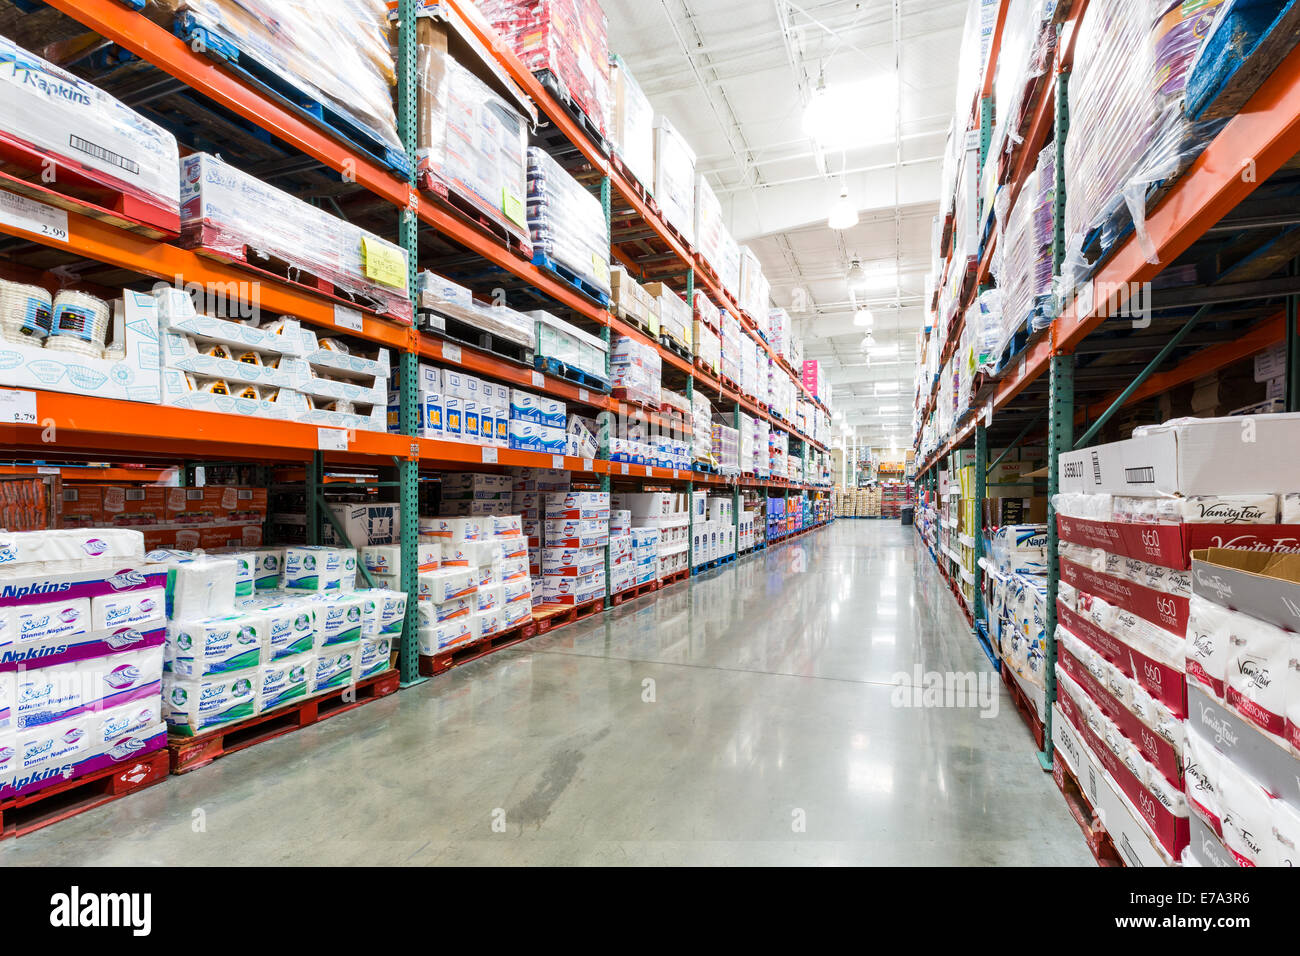 Aisle in a Costco store with napkins, towels and other paper products - Stock Image